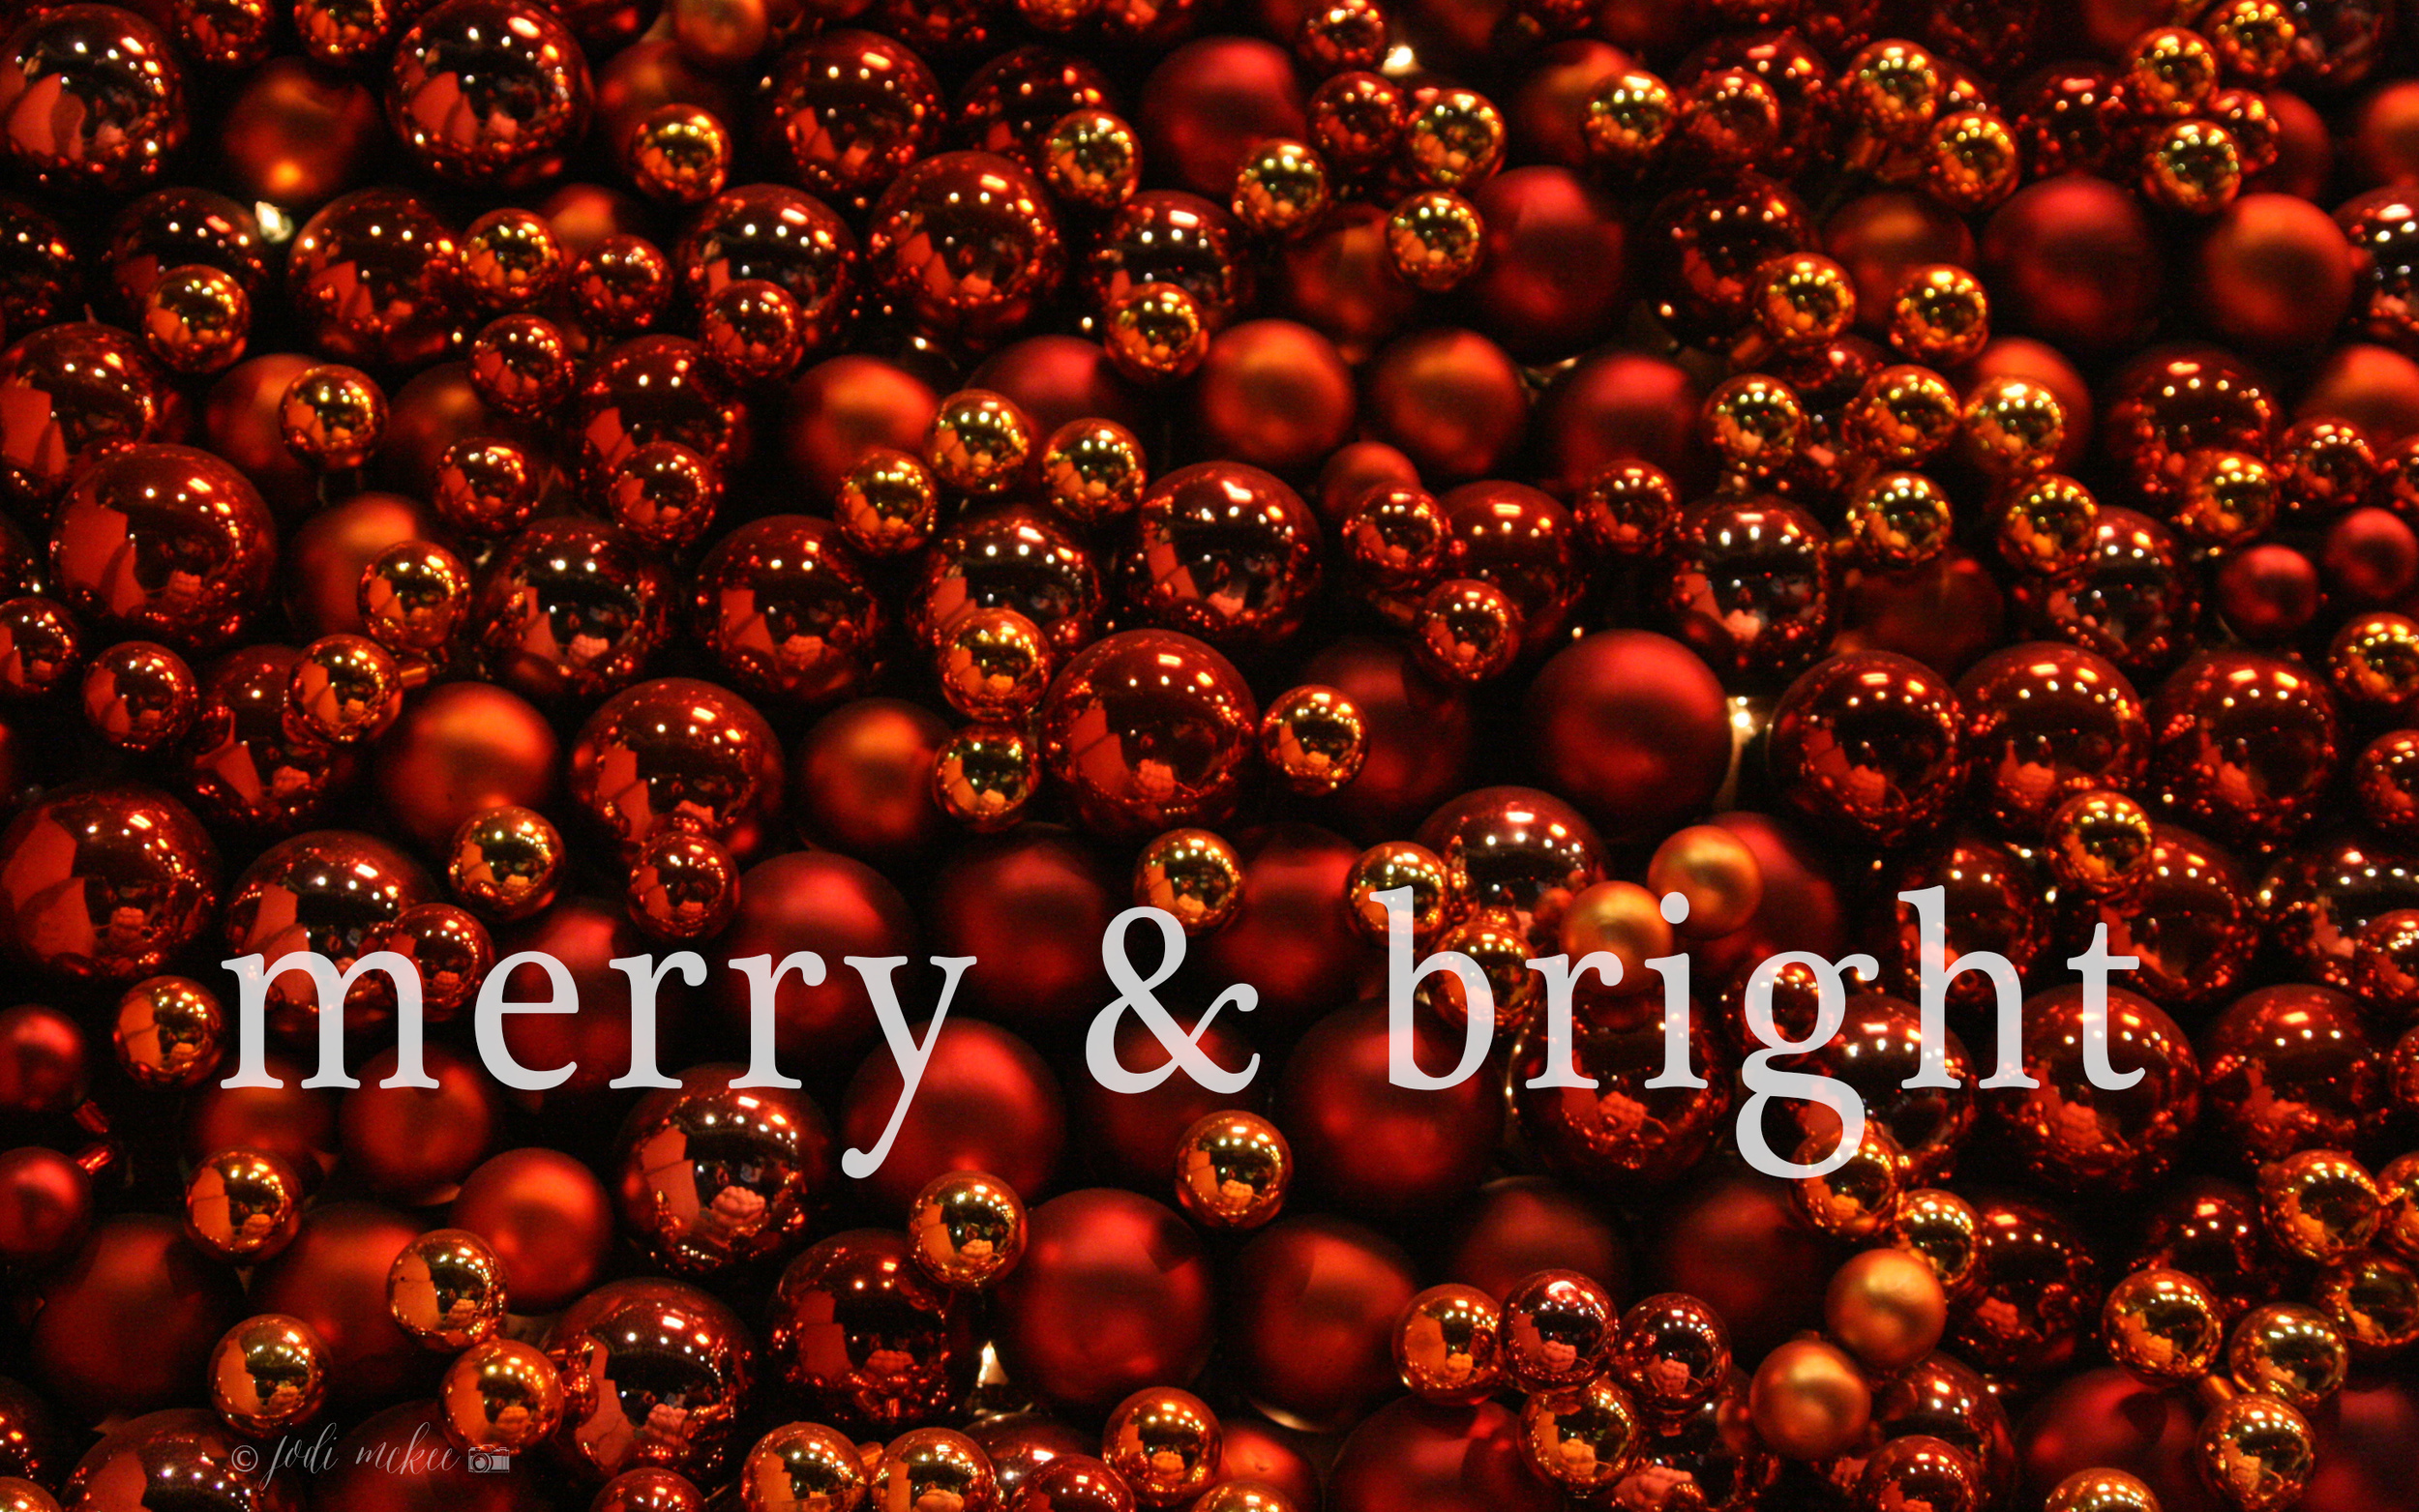 merry & bright desktop wallpaper